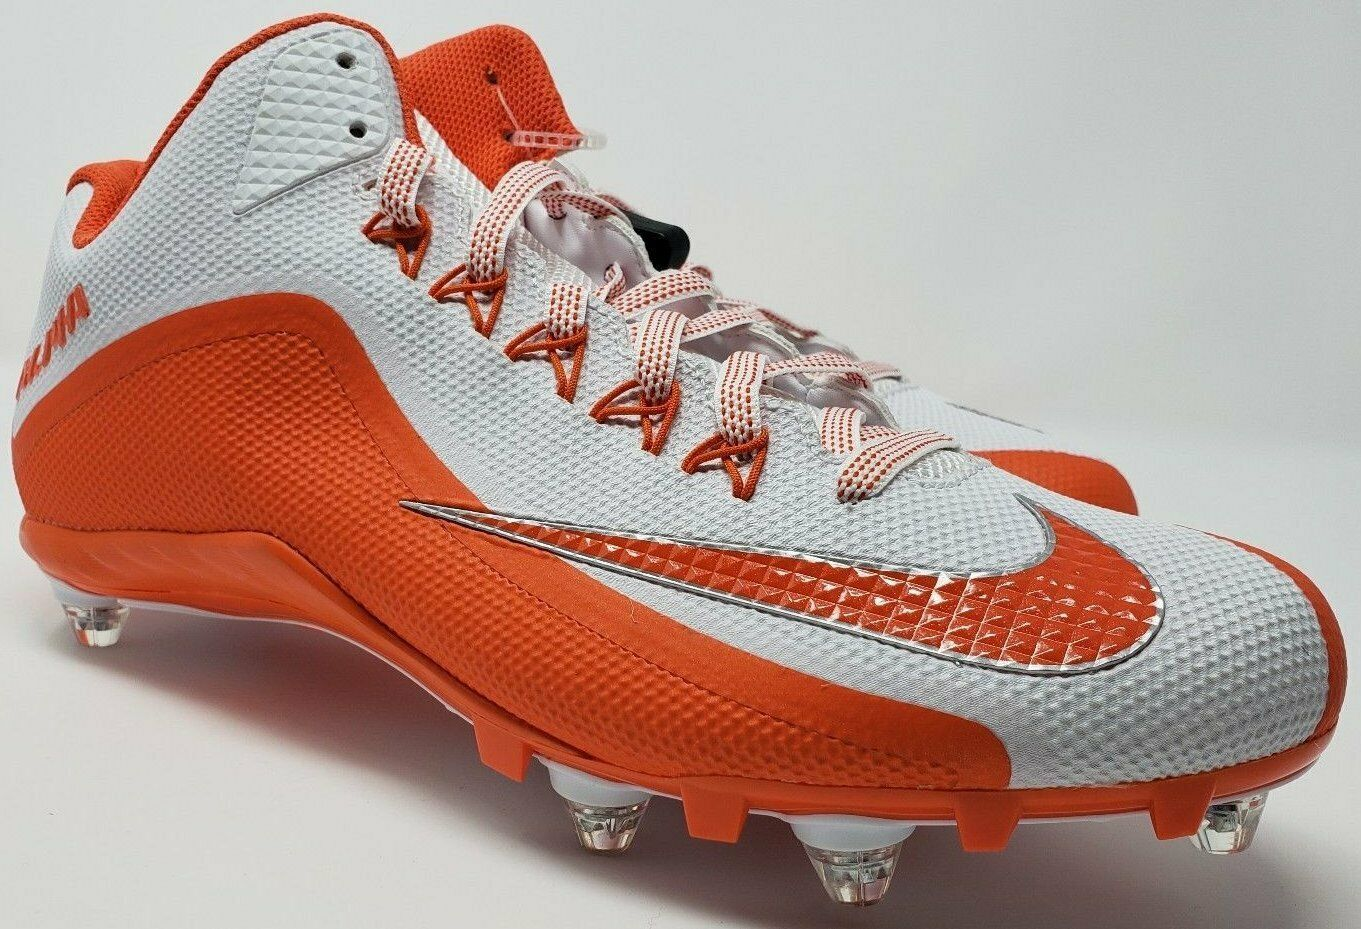 Primary image for Mens Nike Alpha Pro Football Cleats Orange White 719935-188 Size 14